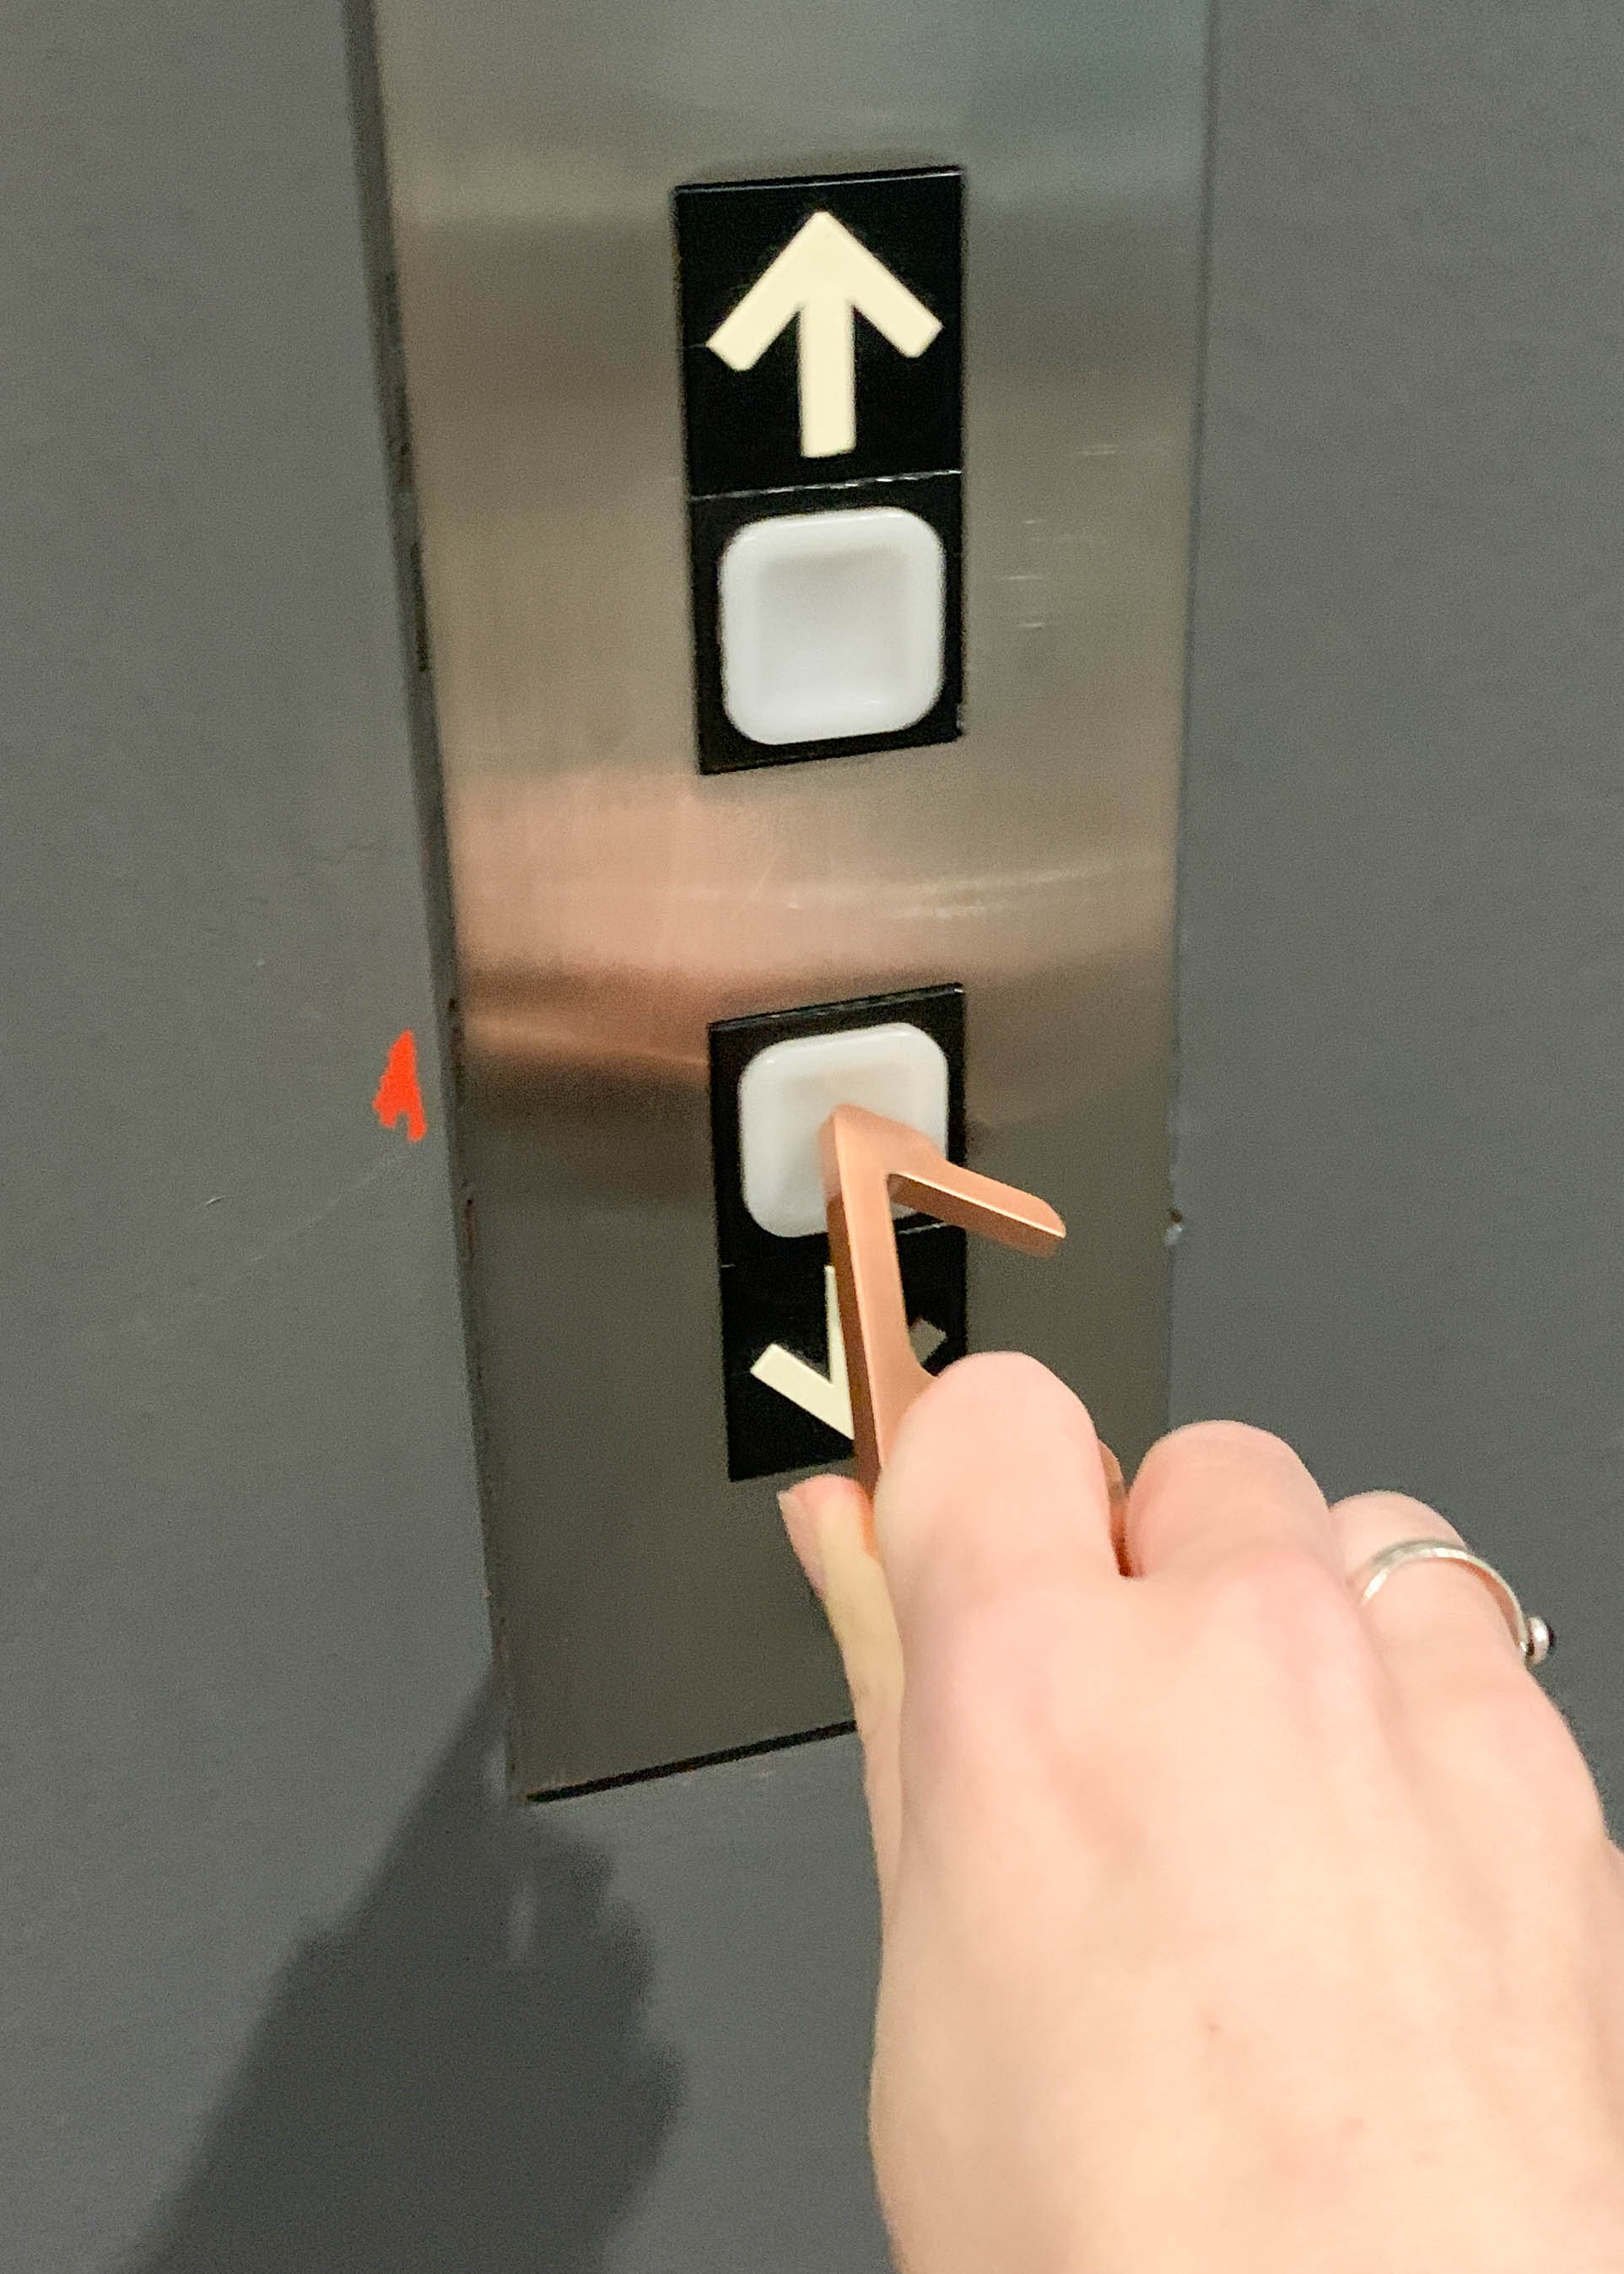 Hand using no-touch keychain on elevator button.